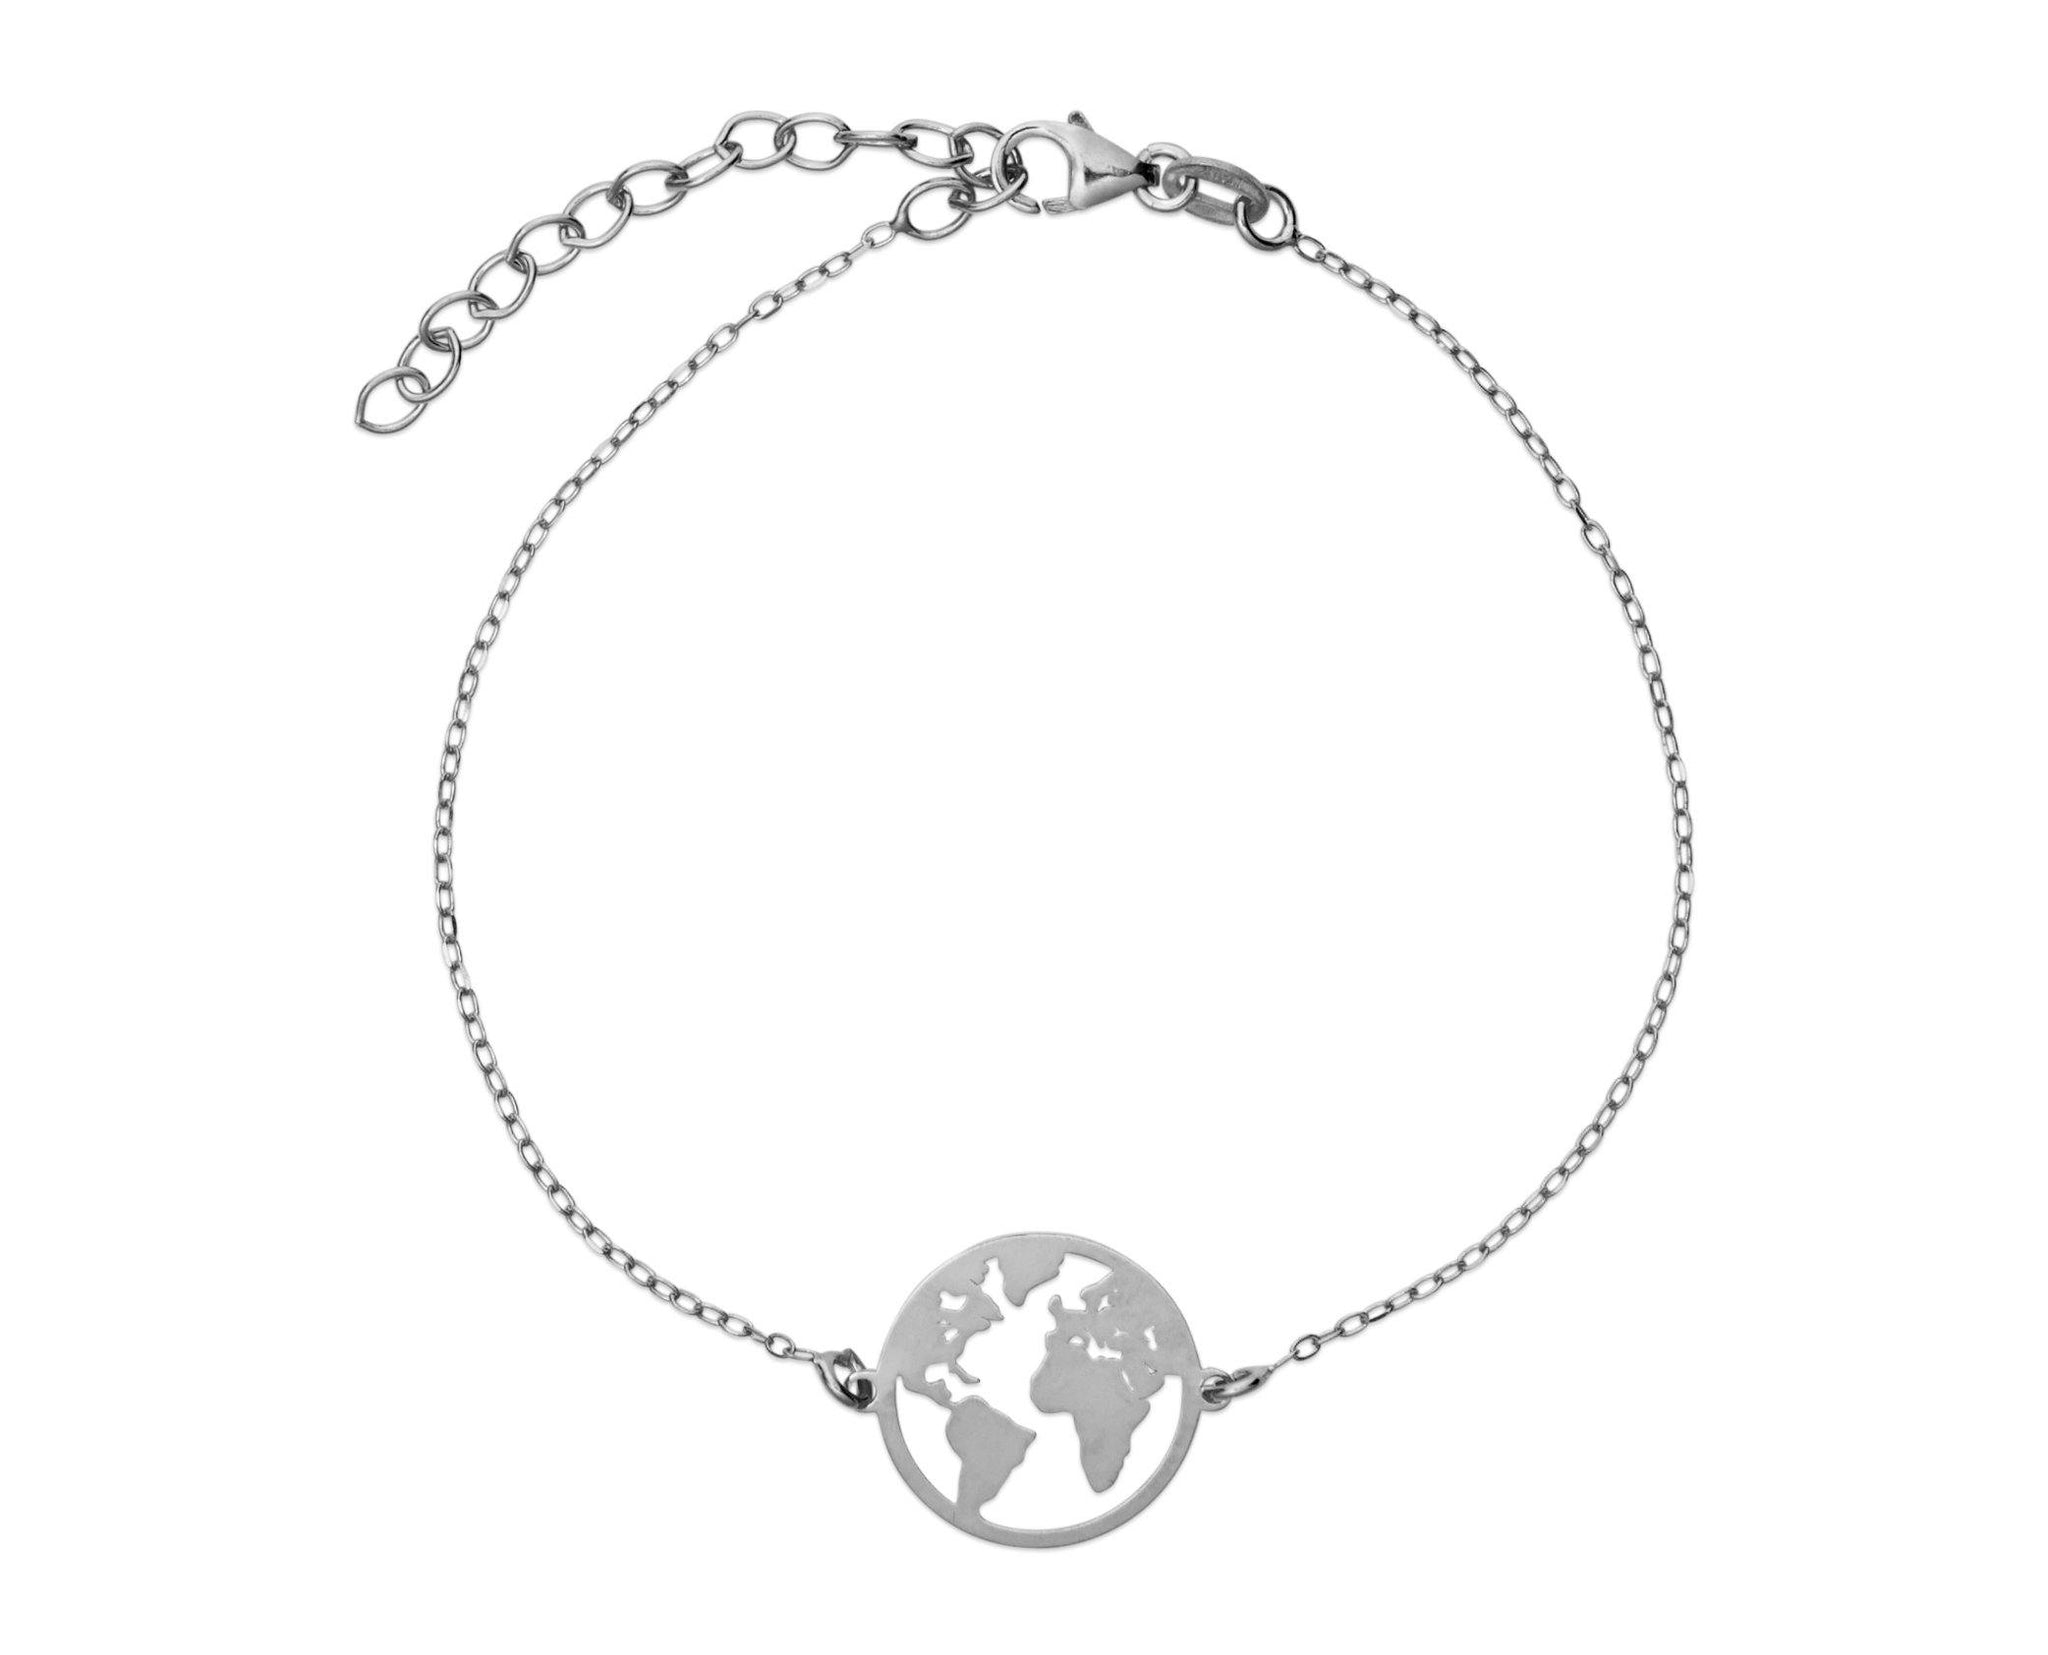 Inclusive World Bracelet - InclusiveJewelry